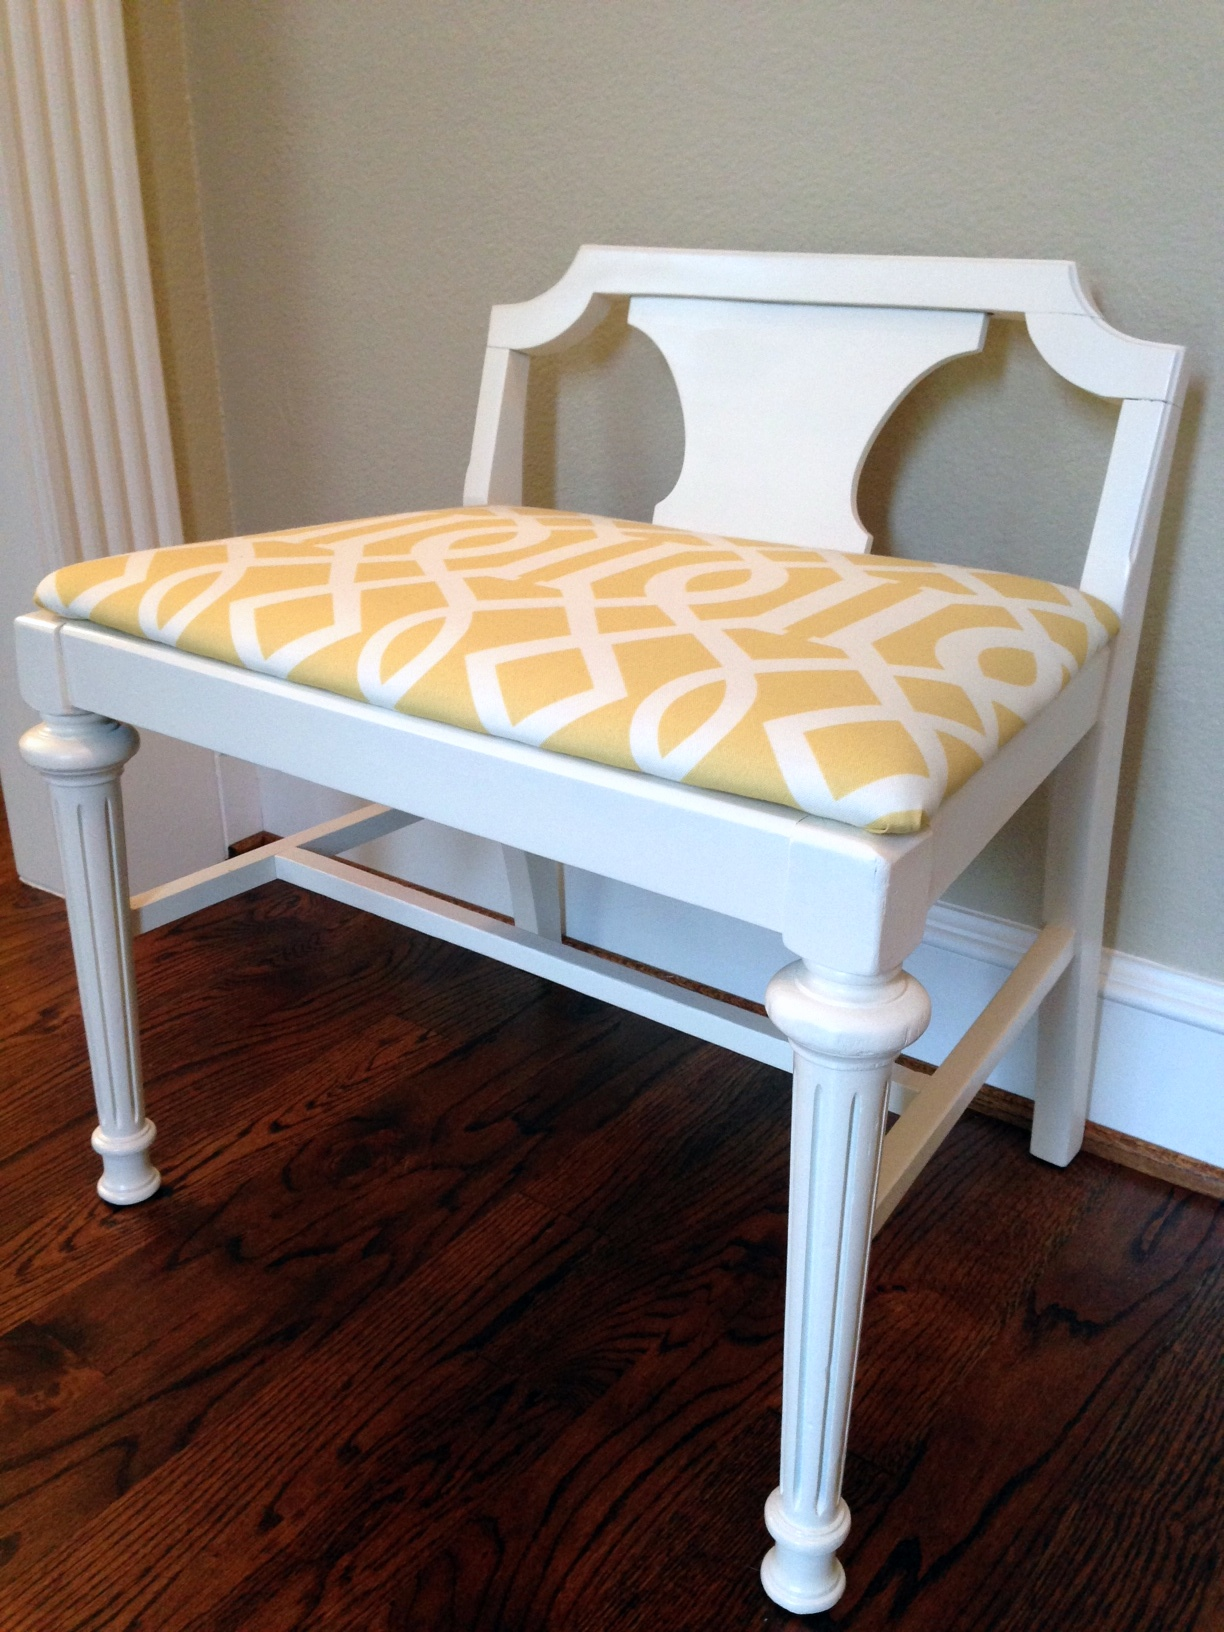 More Designs Of Vanity Bench Seat For Bedroom Benches Bedrooms Design Decor Double Sink Custom Makeup Table With Pvc Room Logo Apppie Org